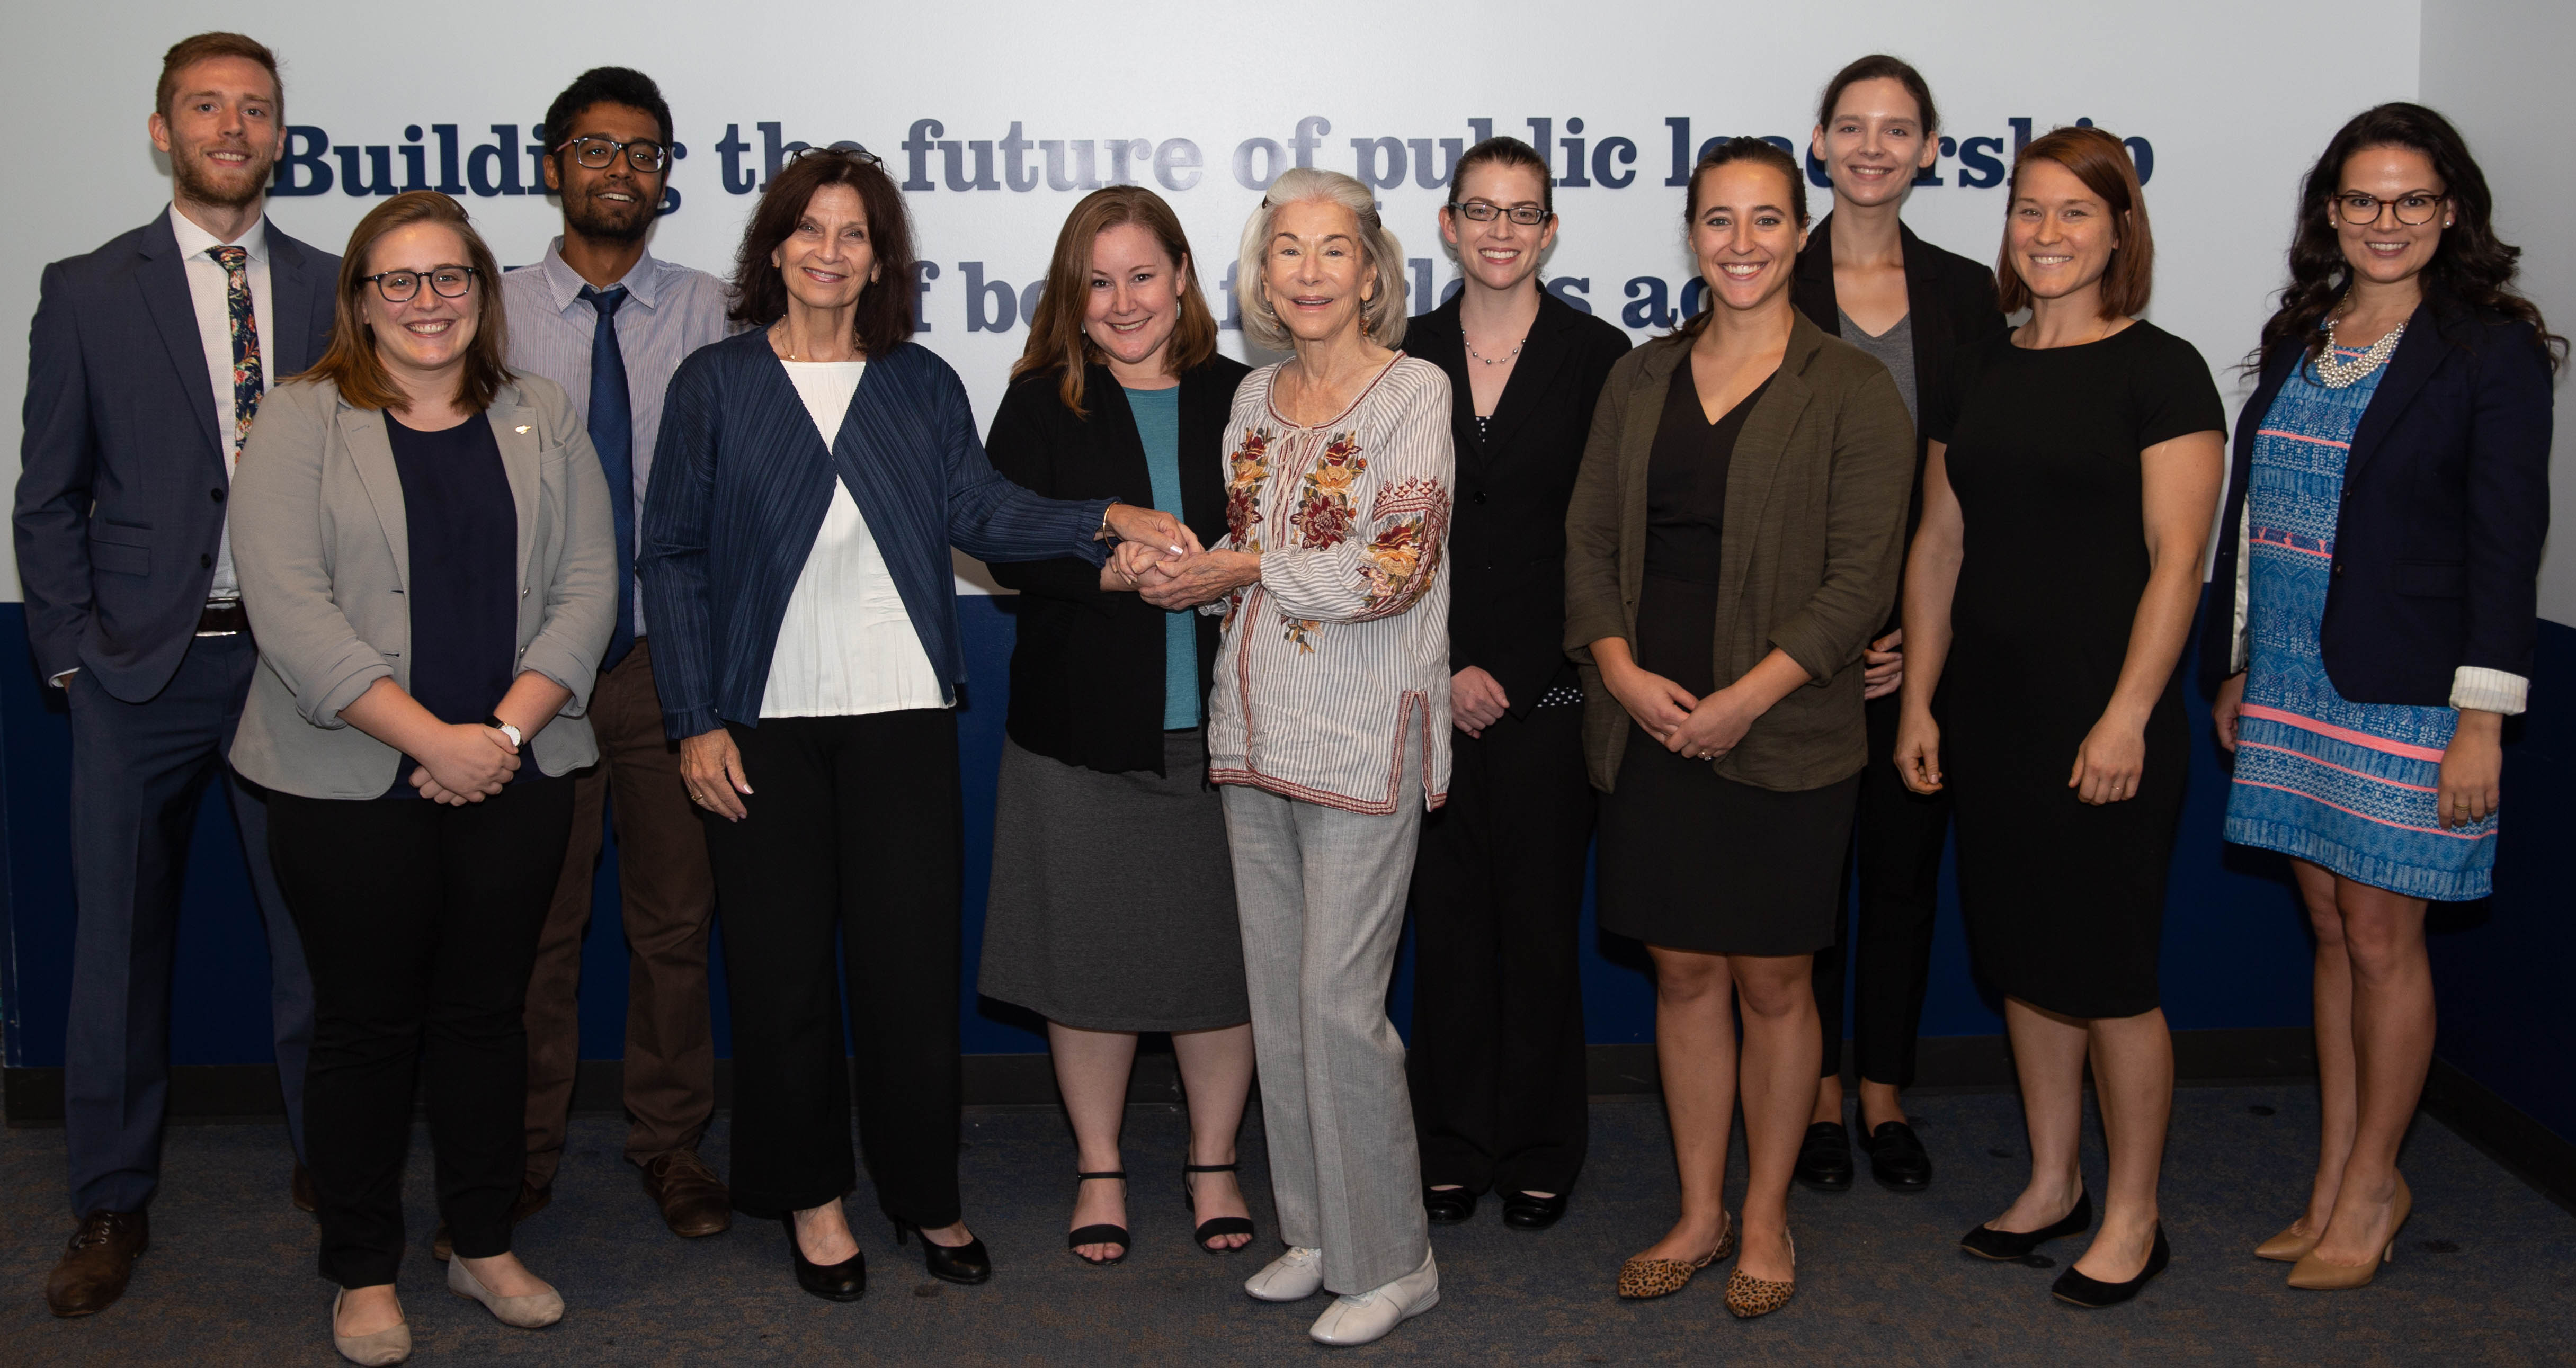 Eleanor Crook (center) with LBJ School Dean Angela Evans, Associate Dean for Students Kate Weaver, and the 2018 Crook Fellows